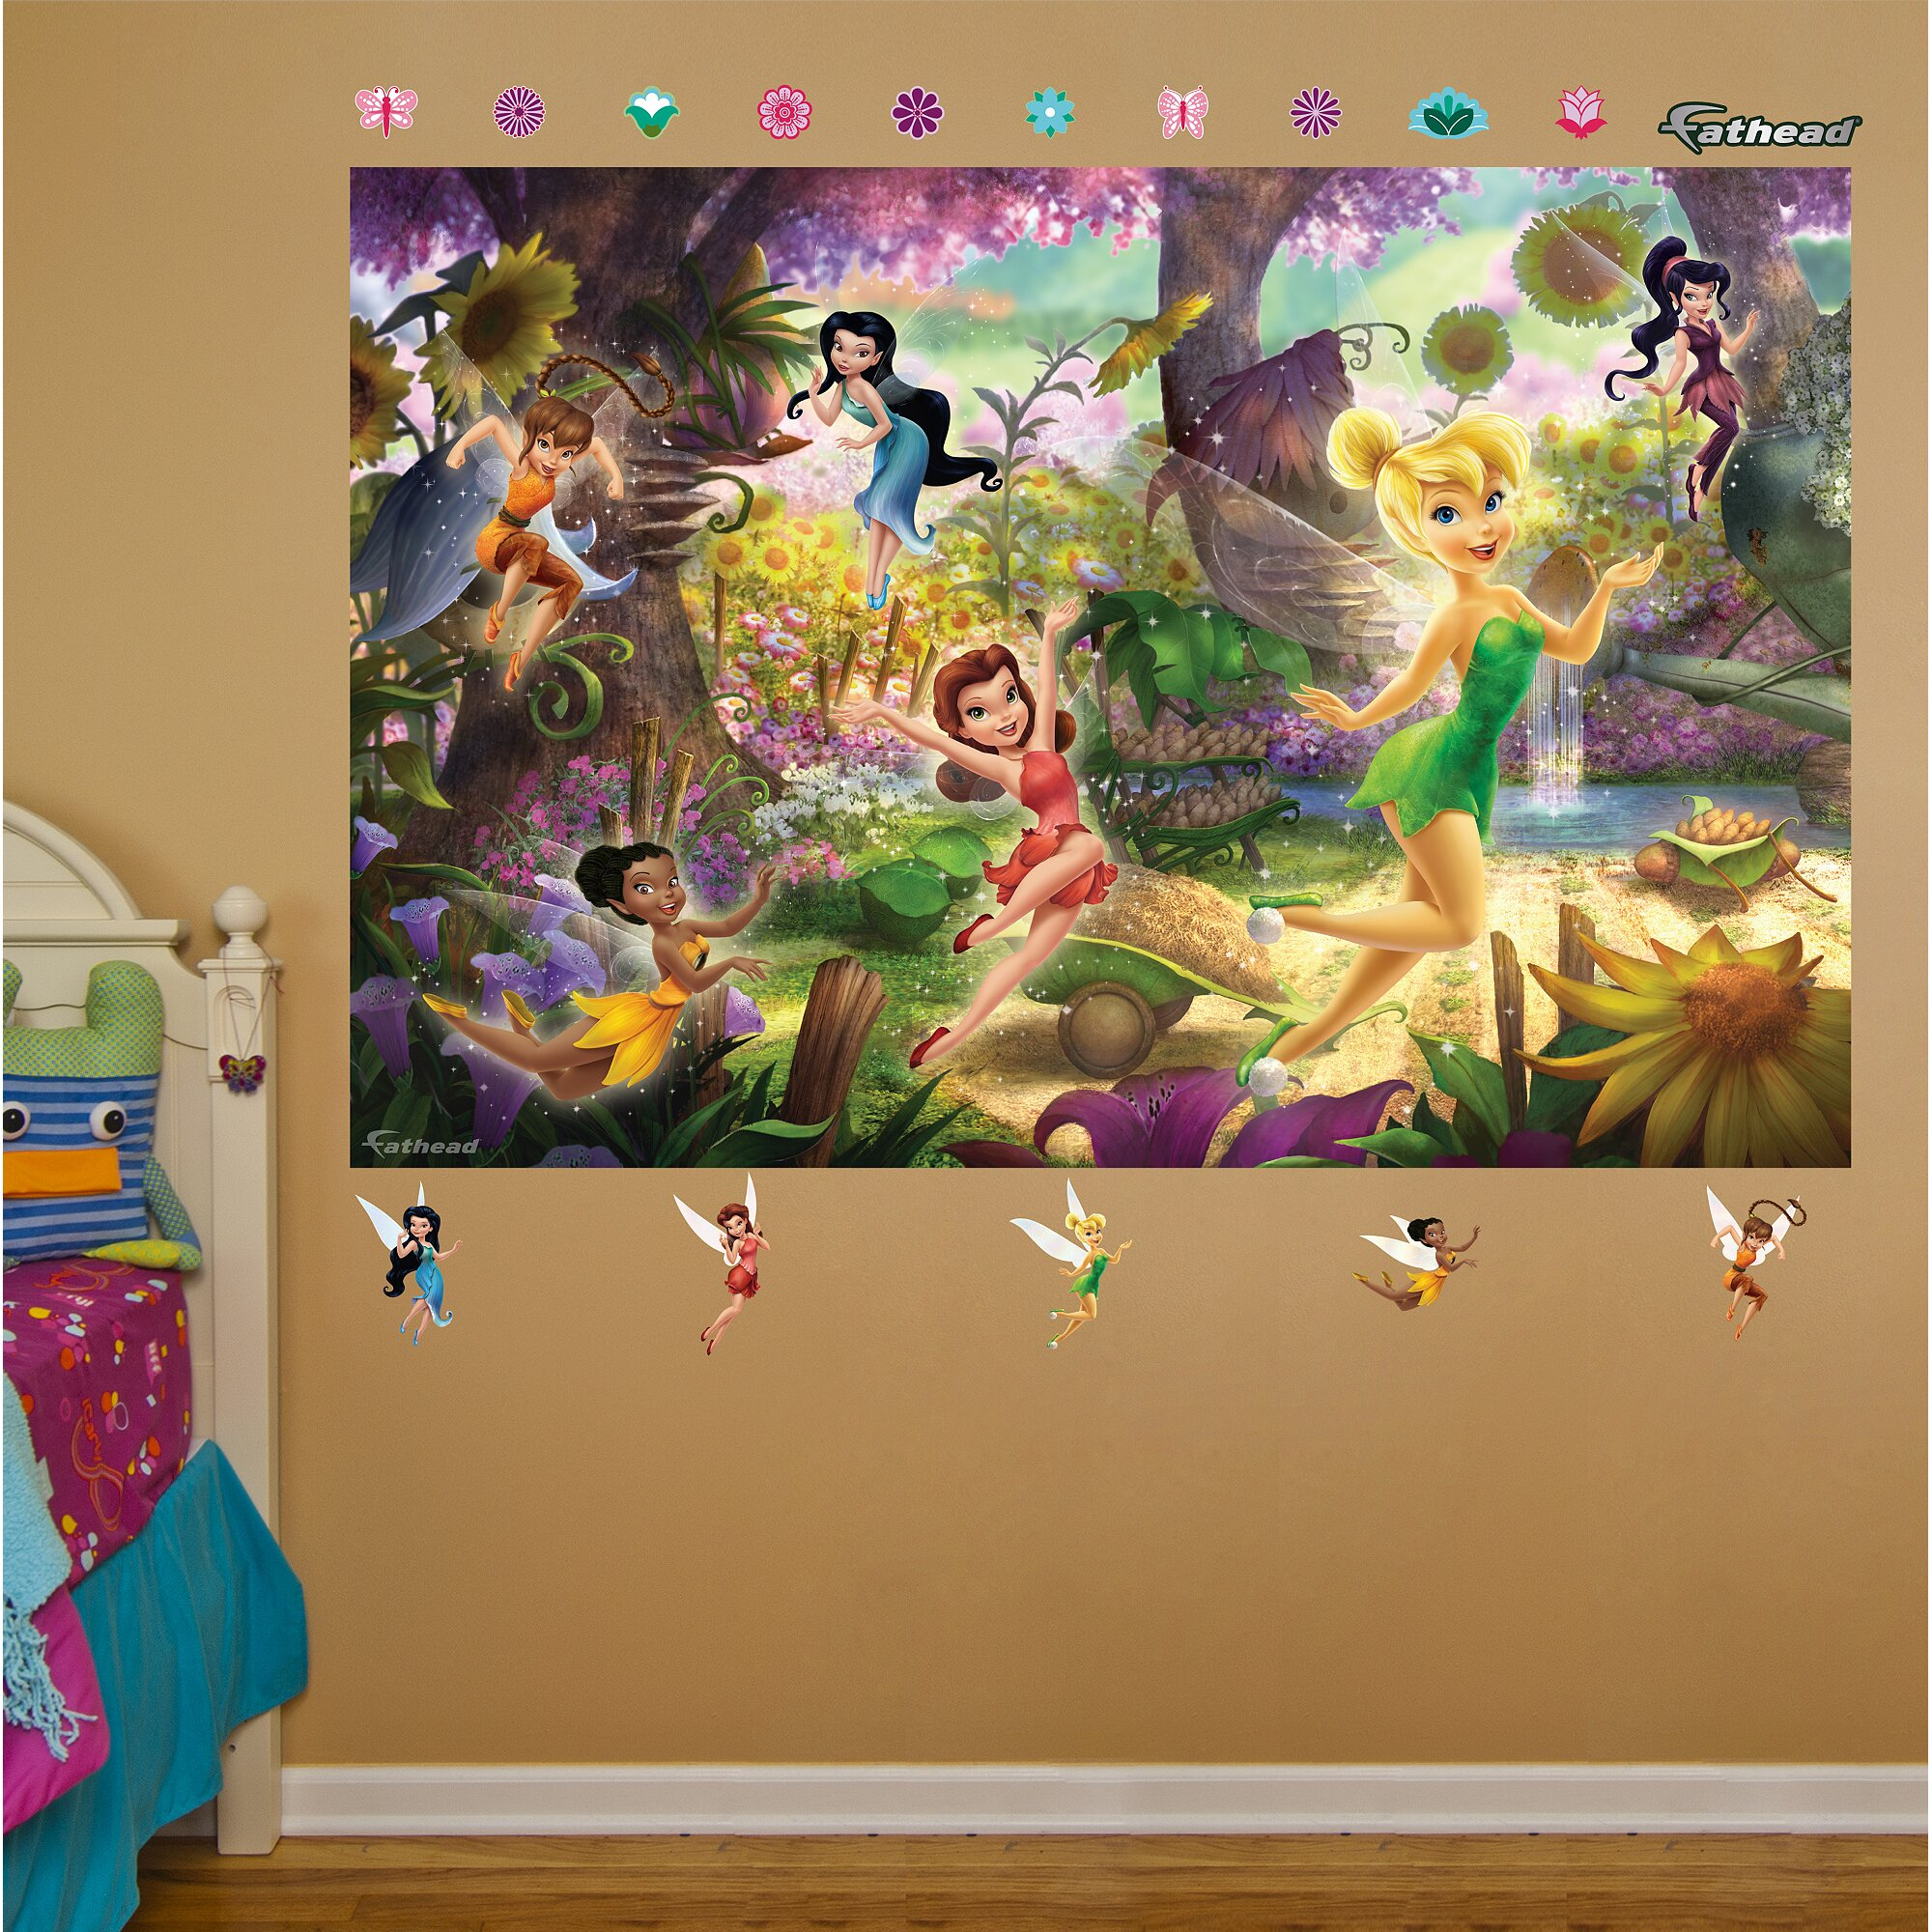 Fathead disney fairies wall mural wayfair for Fairies wall mural